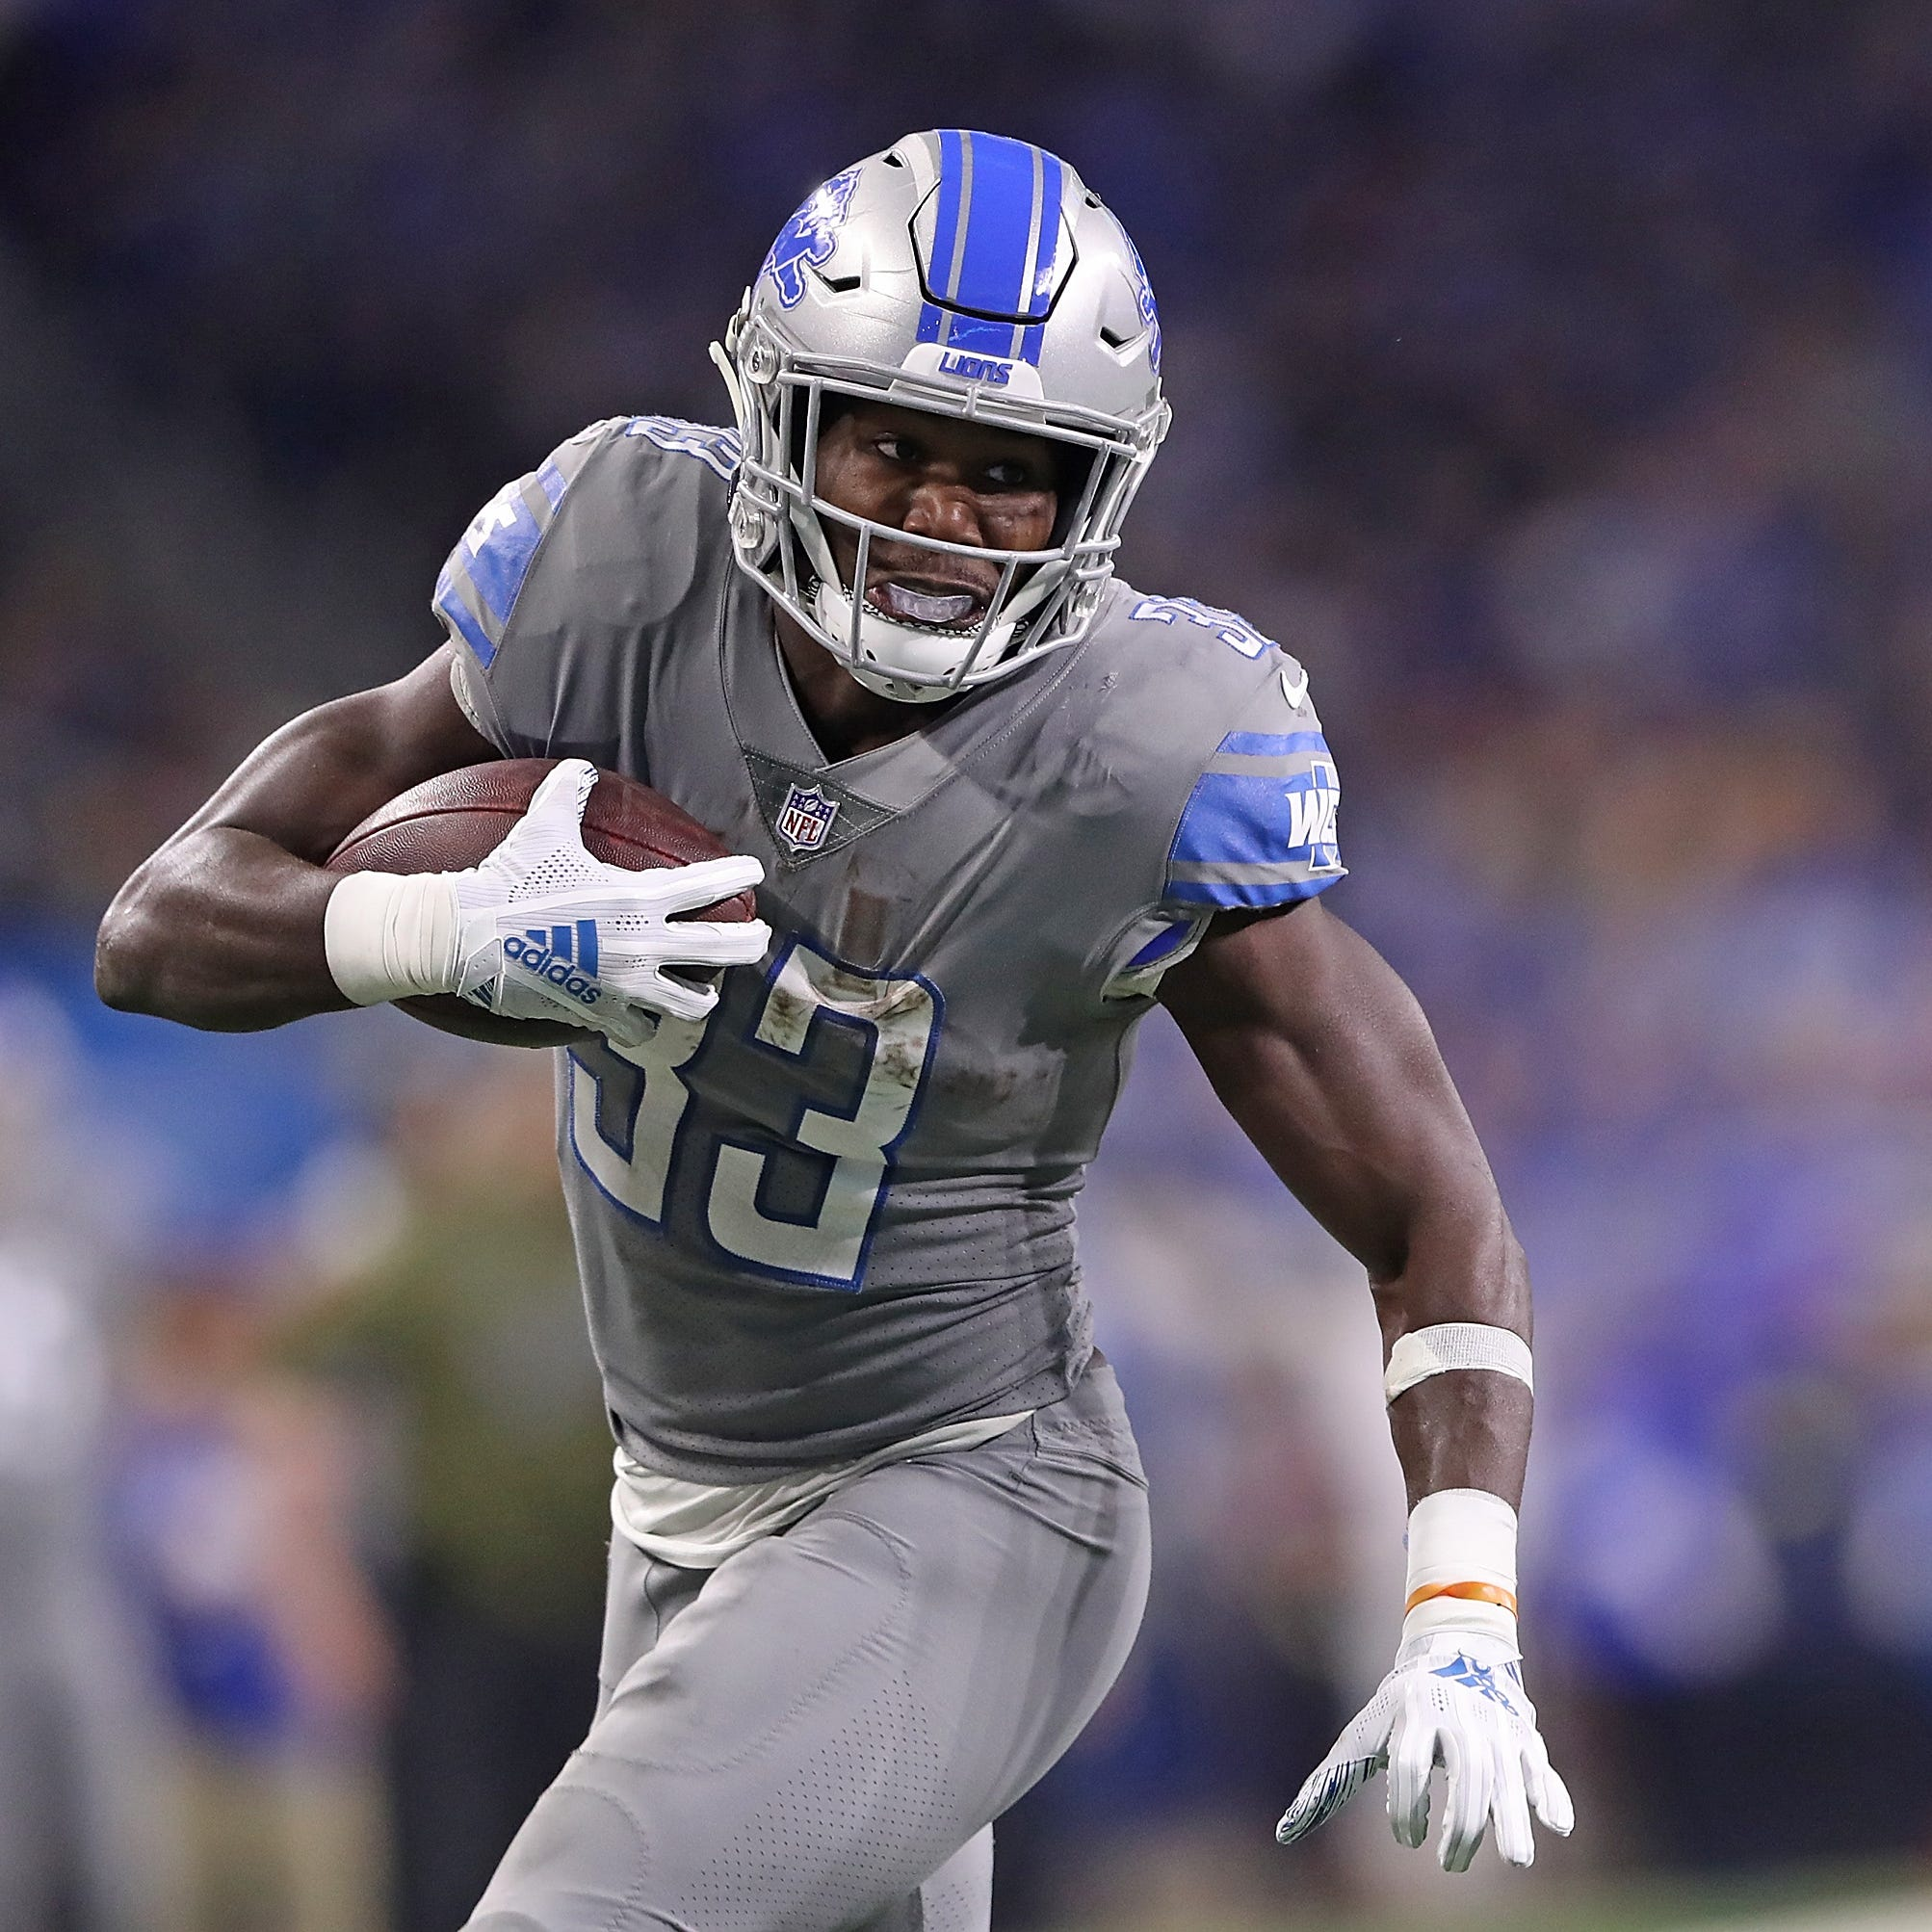 Lions snap losing streak vs. Panthers, but Kerryon Johnson injury looms